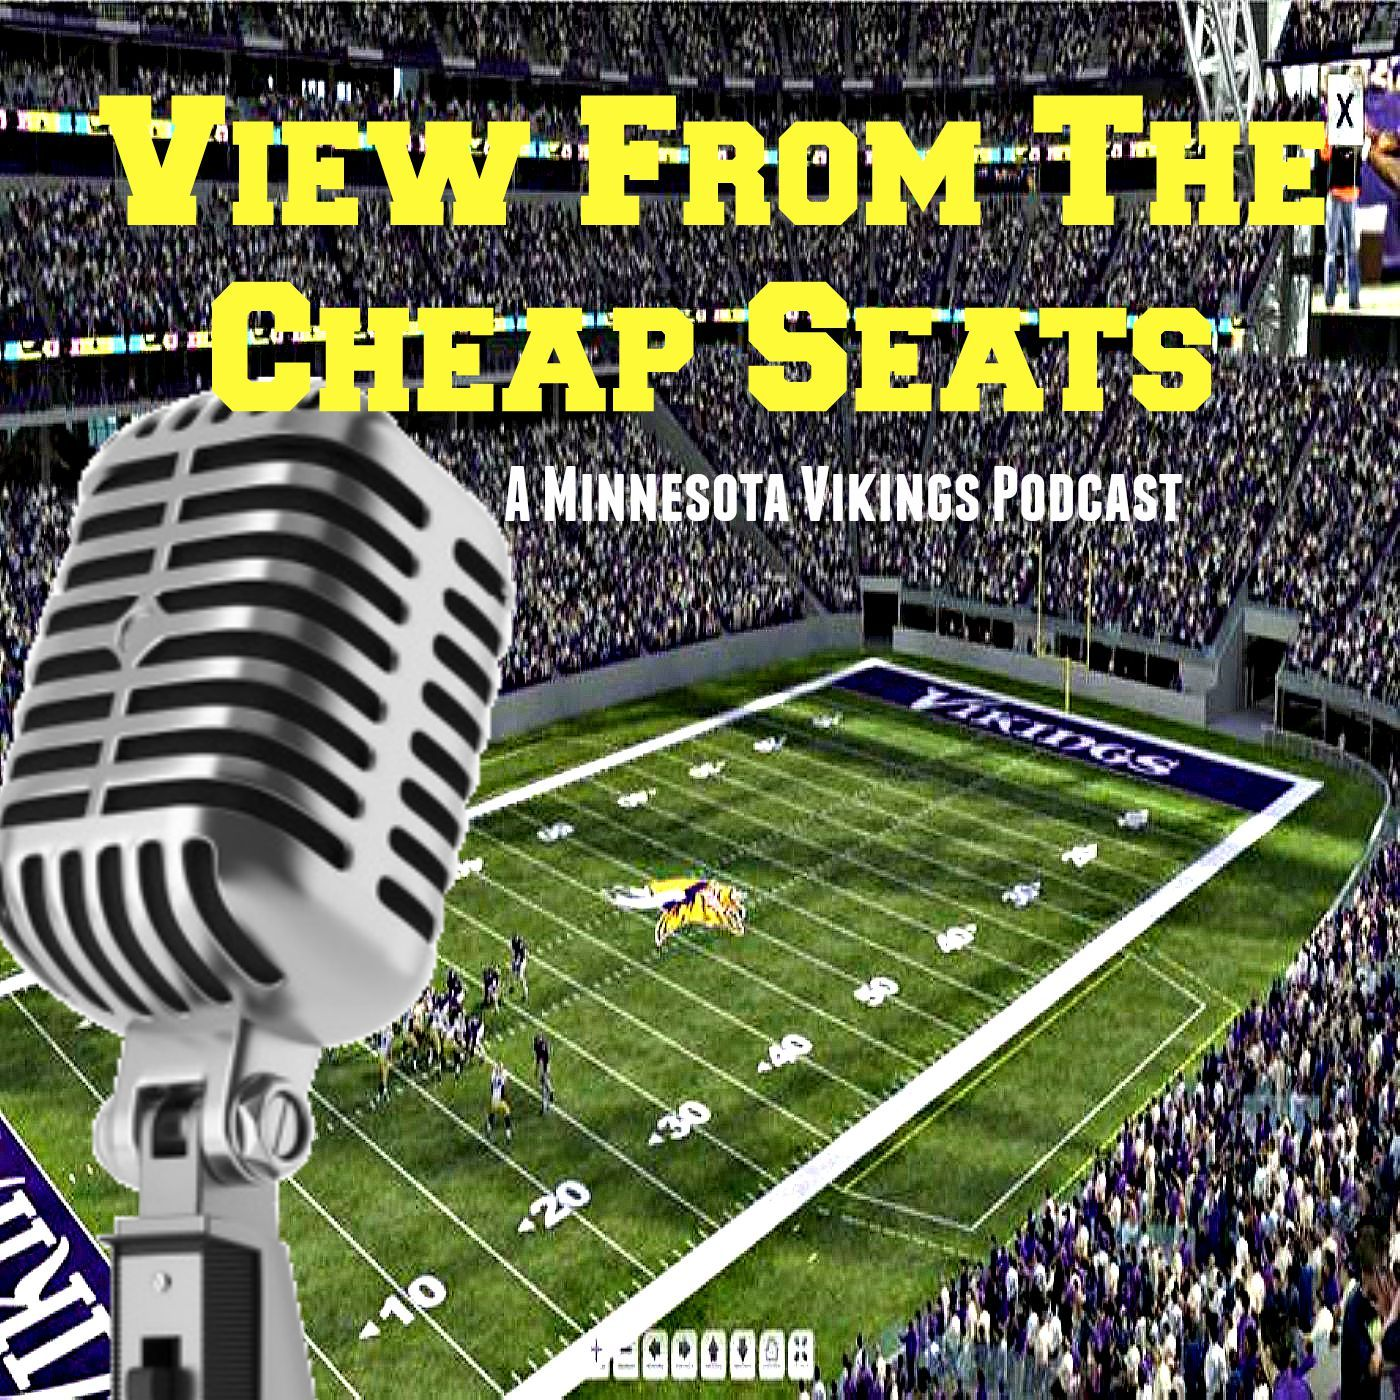 View from the Cheap Seats: A Minnesota Vikings Podcast